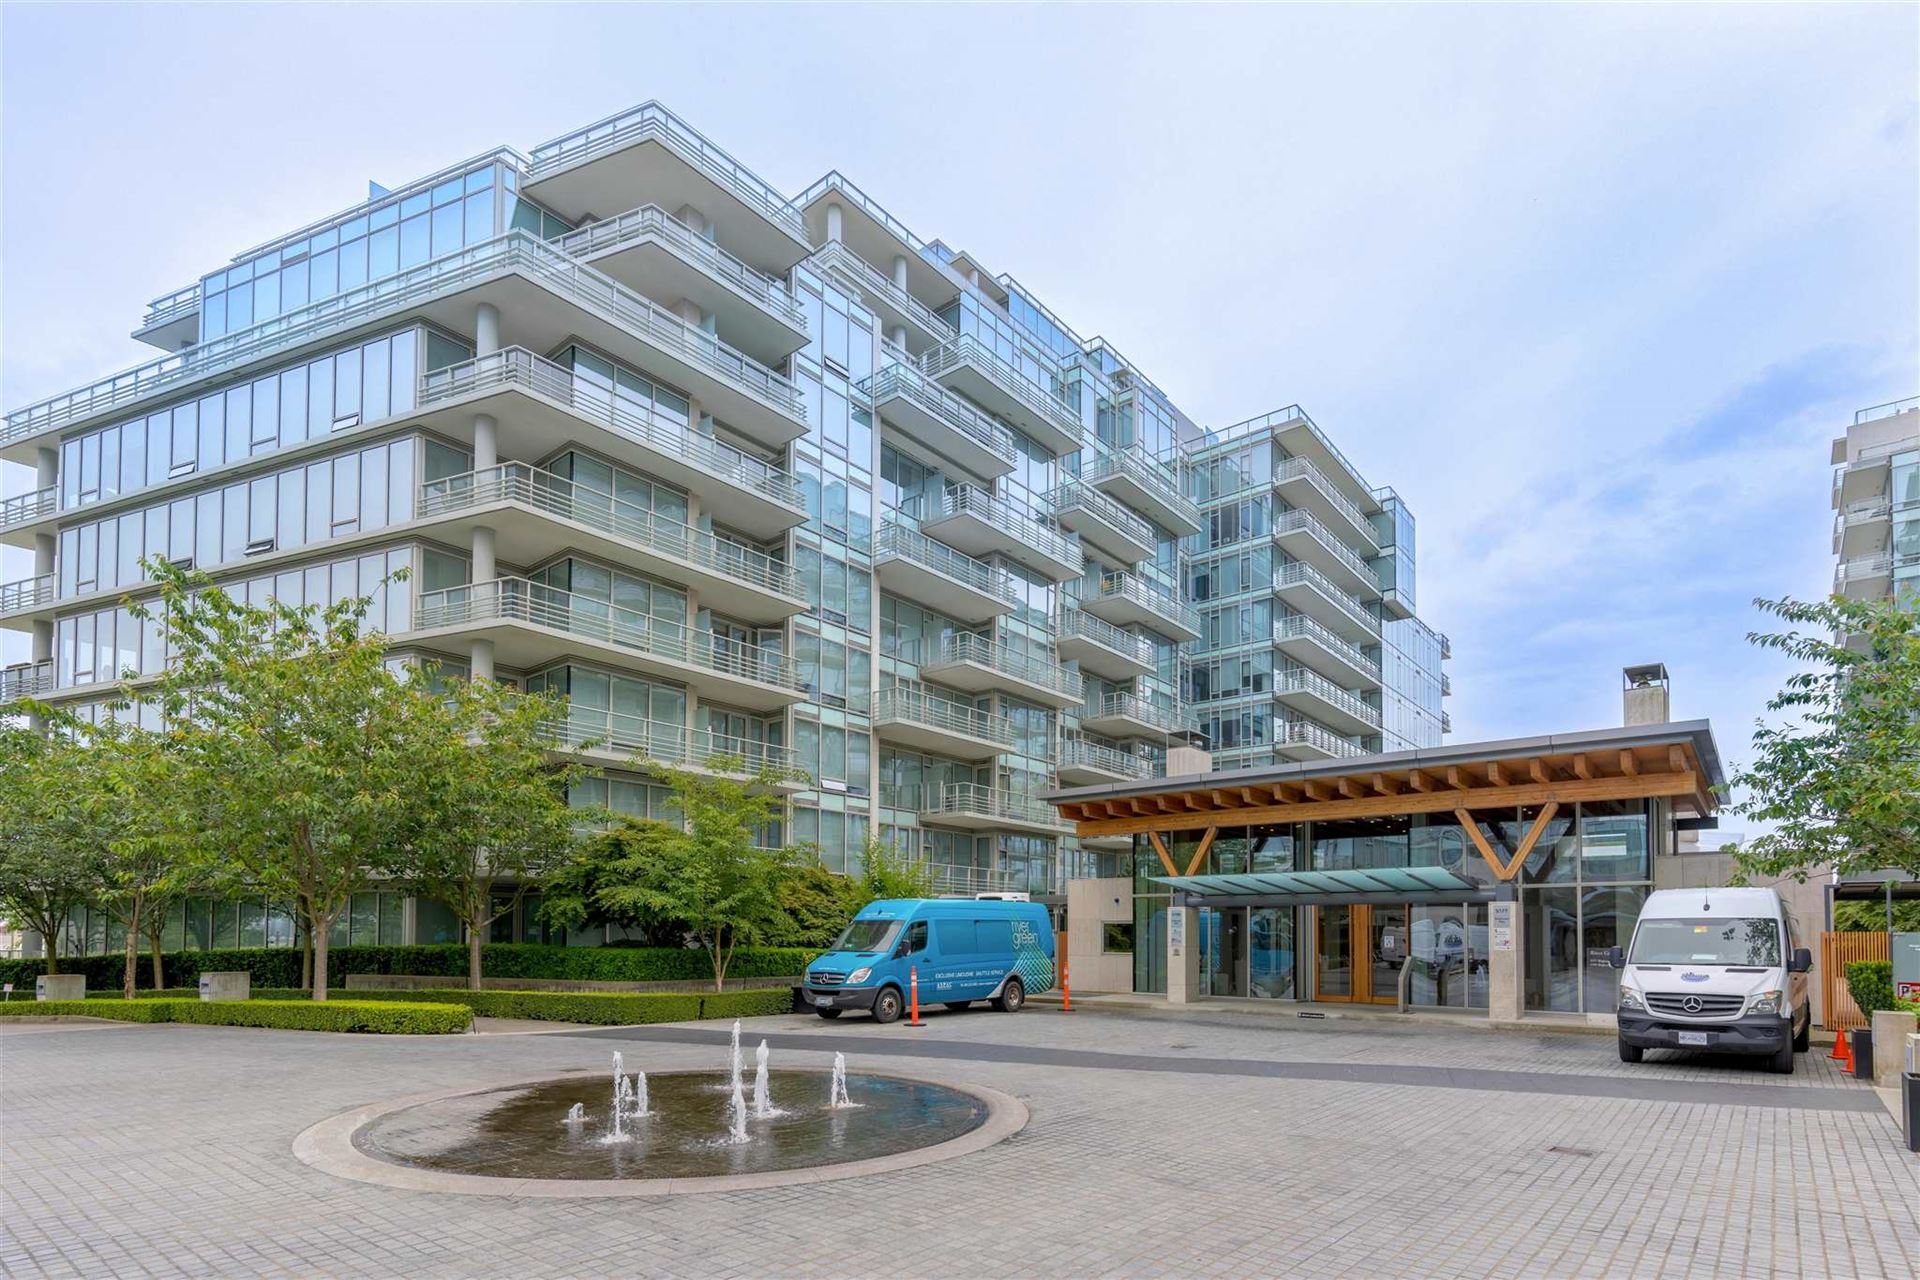 Photo for 708 5199 BRIGHOUSE WAY, Richmond, BC V7C 0A7 (MLS # R2593812)